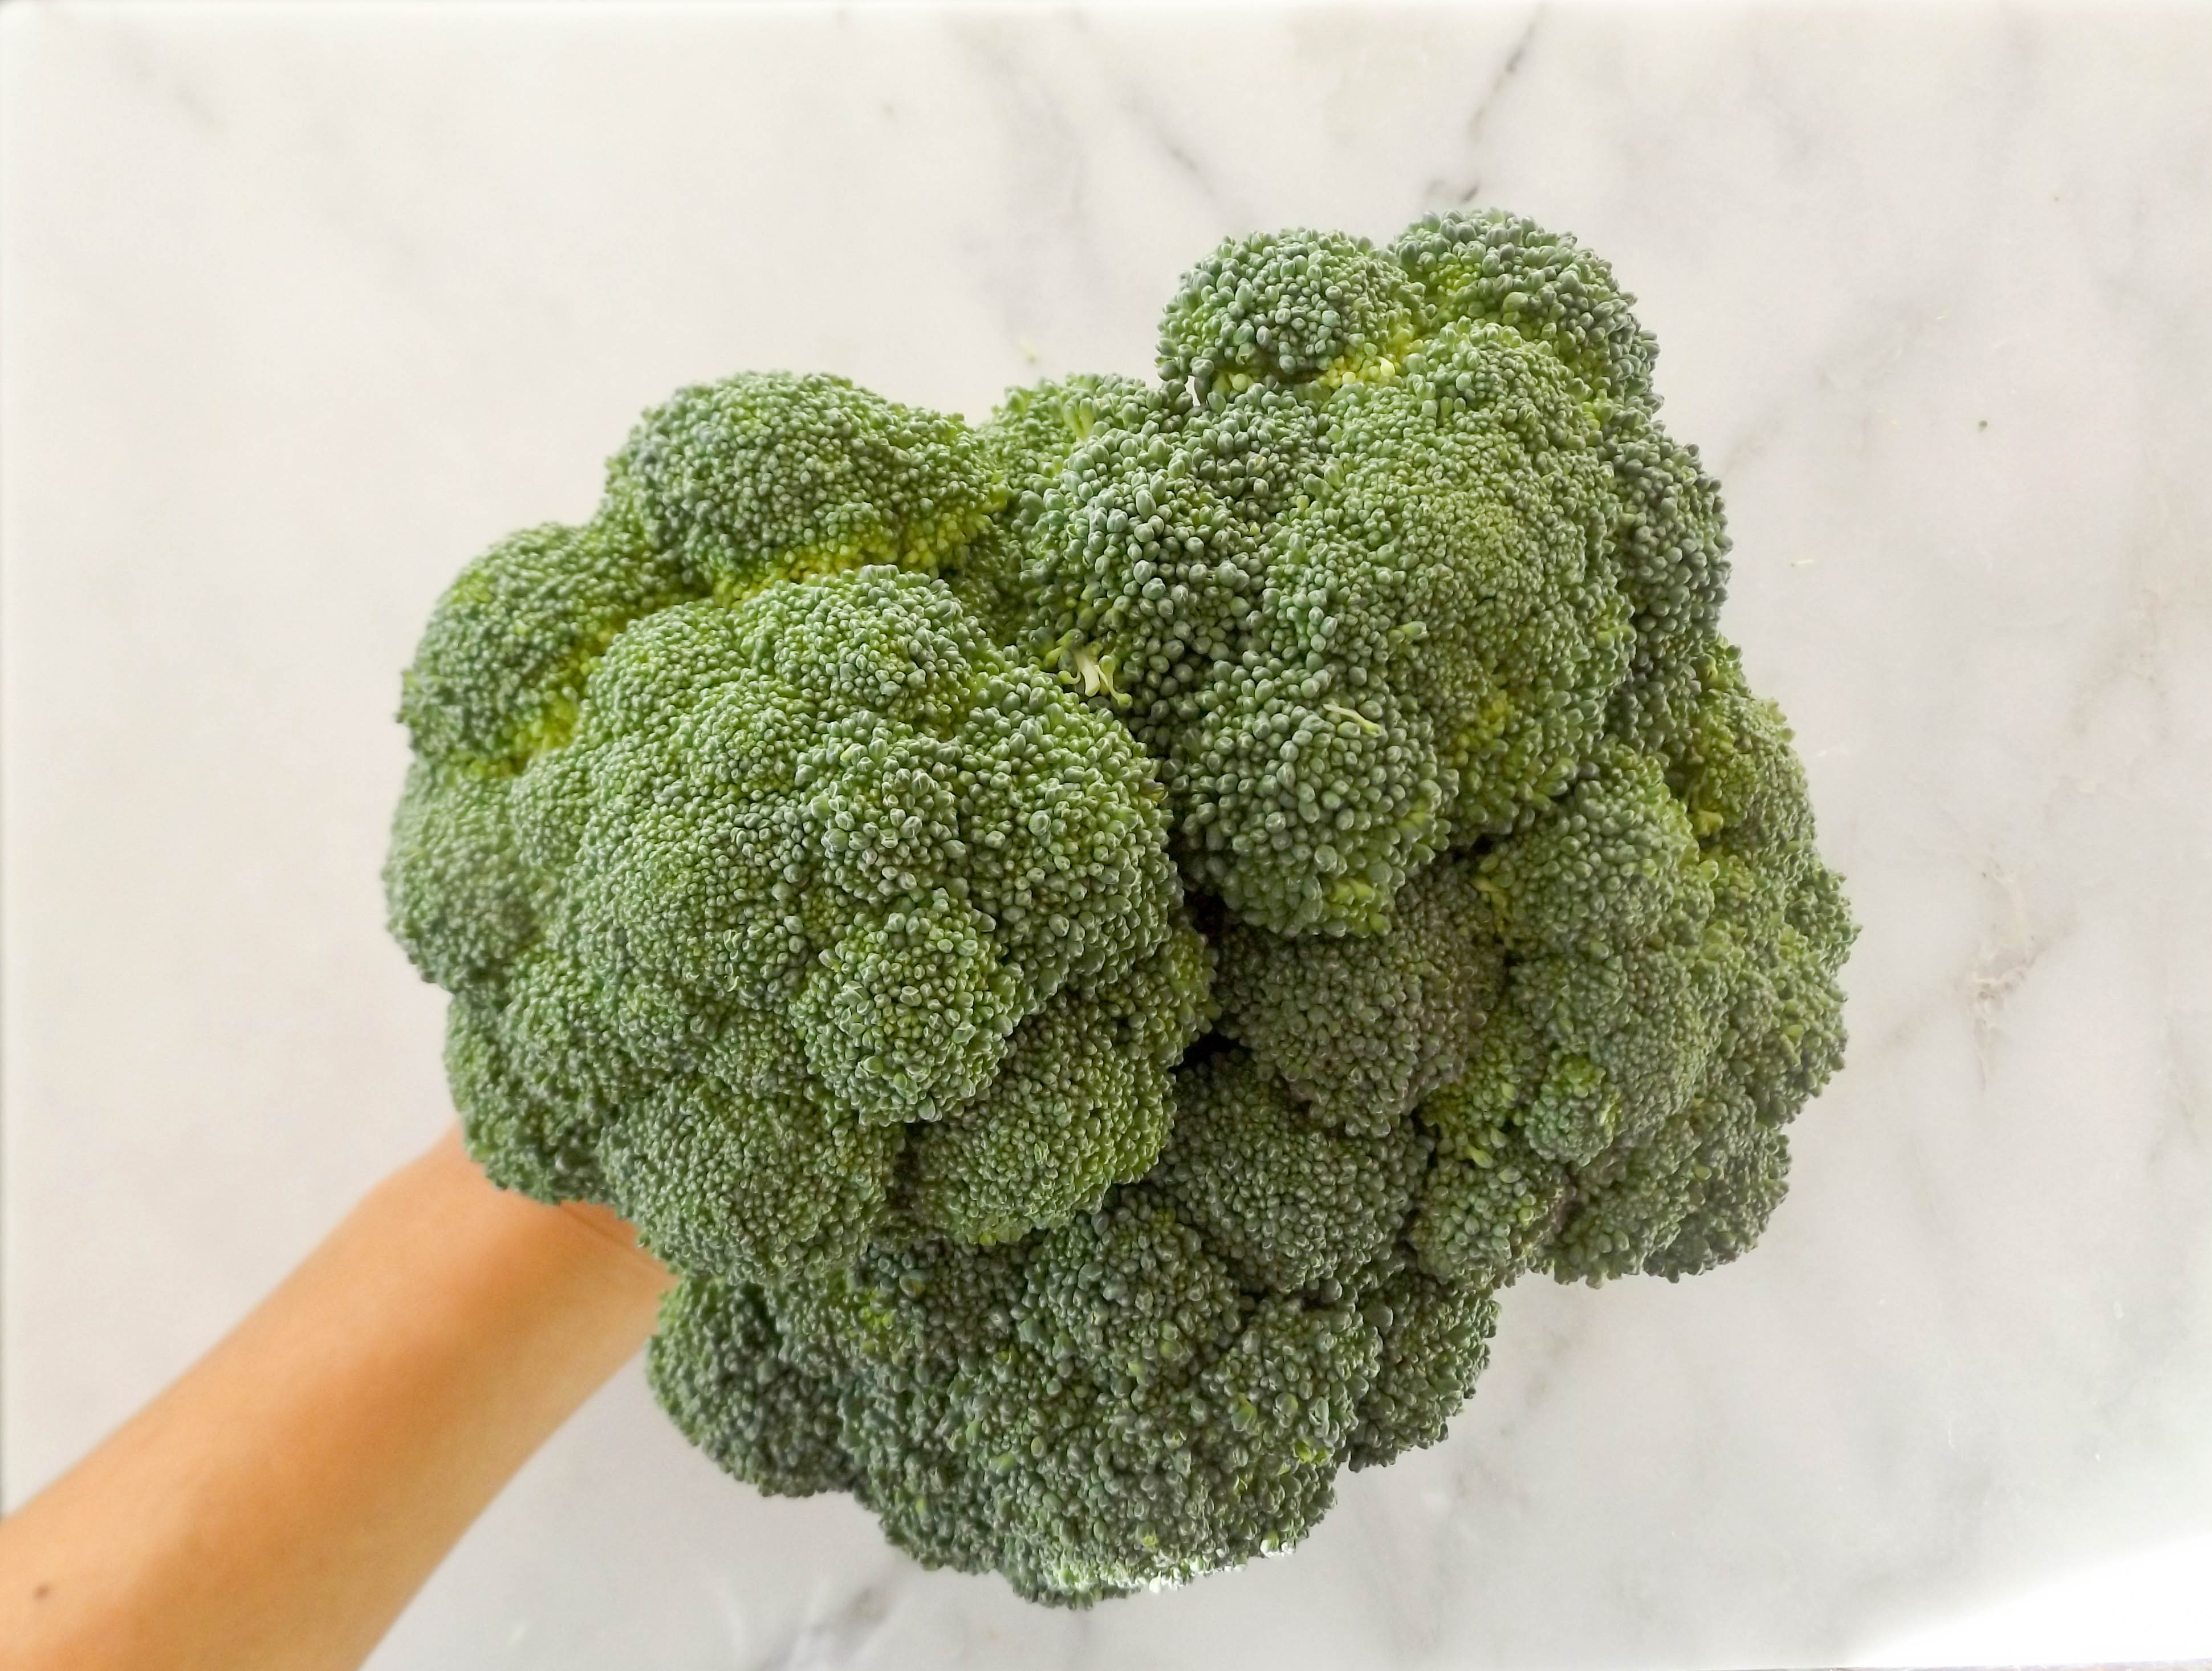 Featured Ingredient: Broccoli